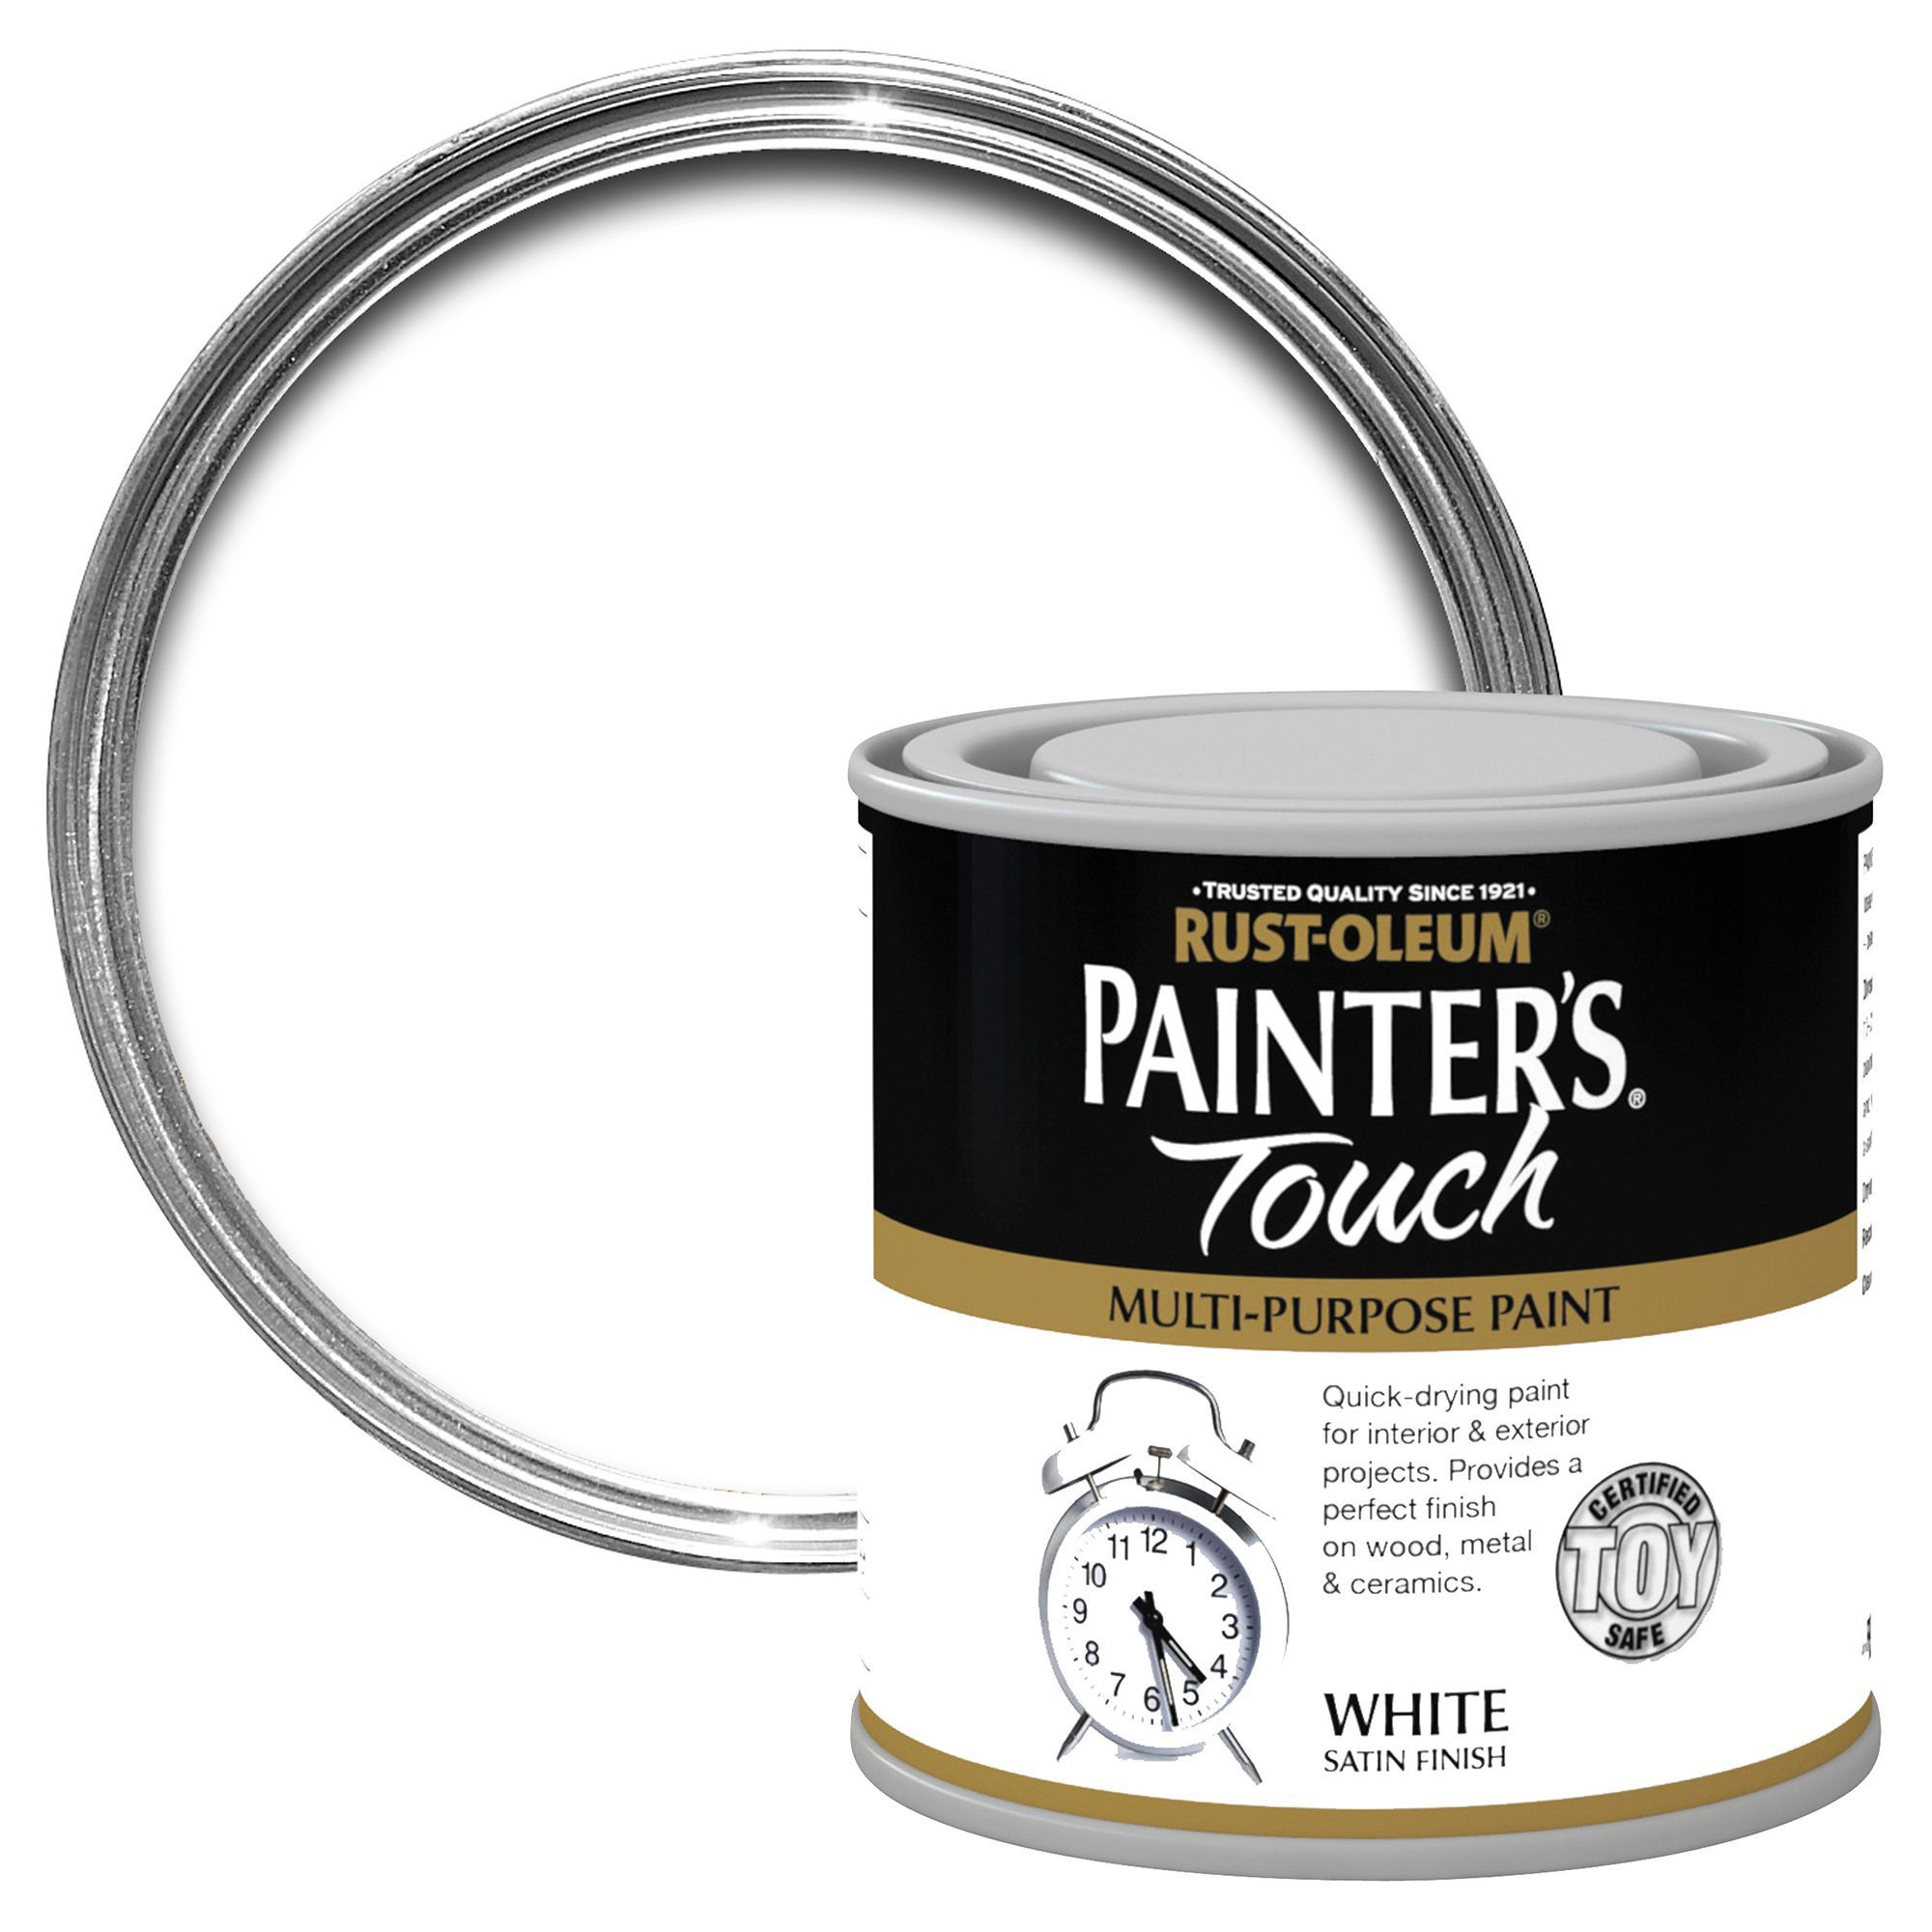 Rust-oleum Painter's Touch Interior & Exterior White Satin Multipurpose Paint 250ml